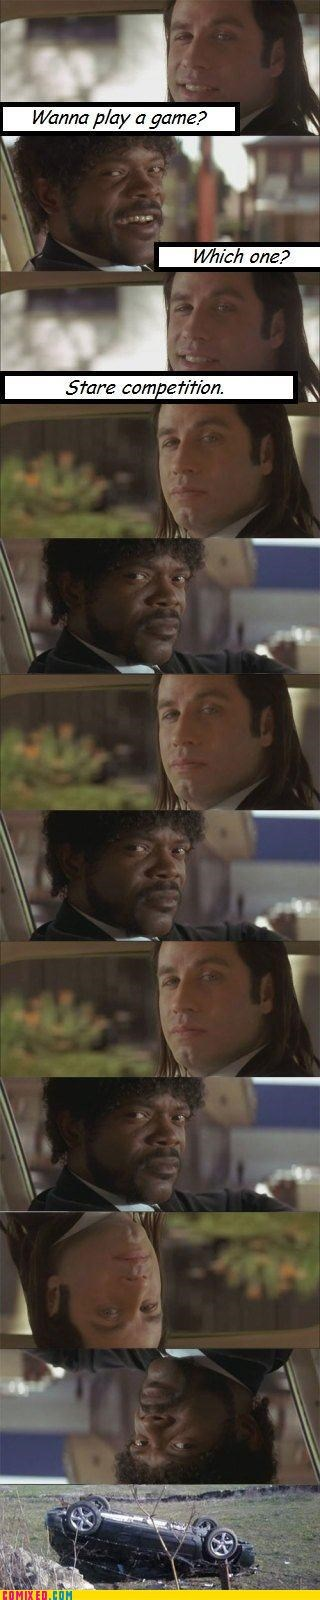 car accident From the Movies idiots john travolta pulp fiction Samuel L Jackson stare contest - 4368582912